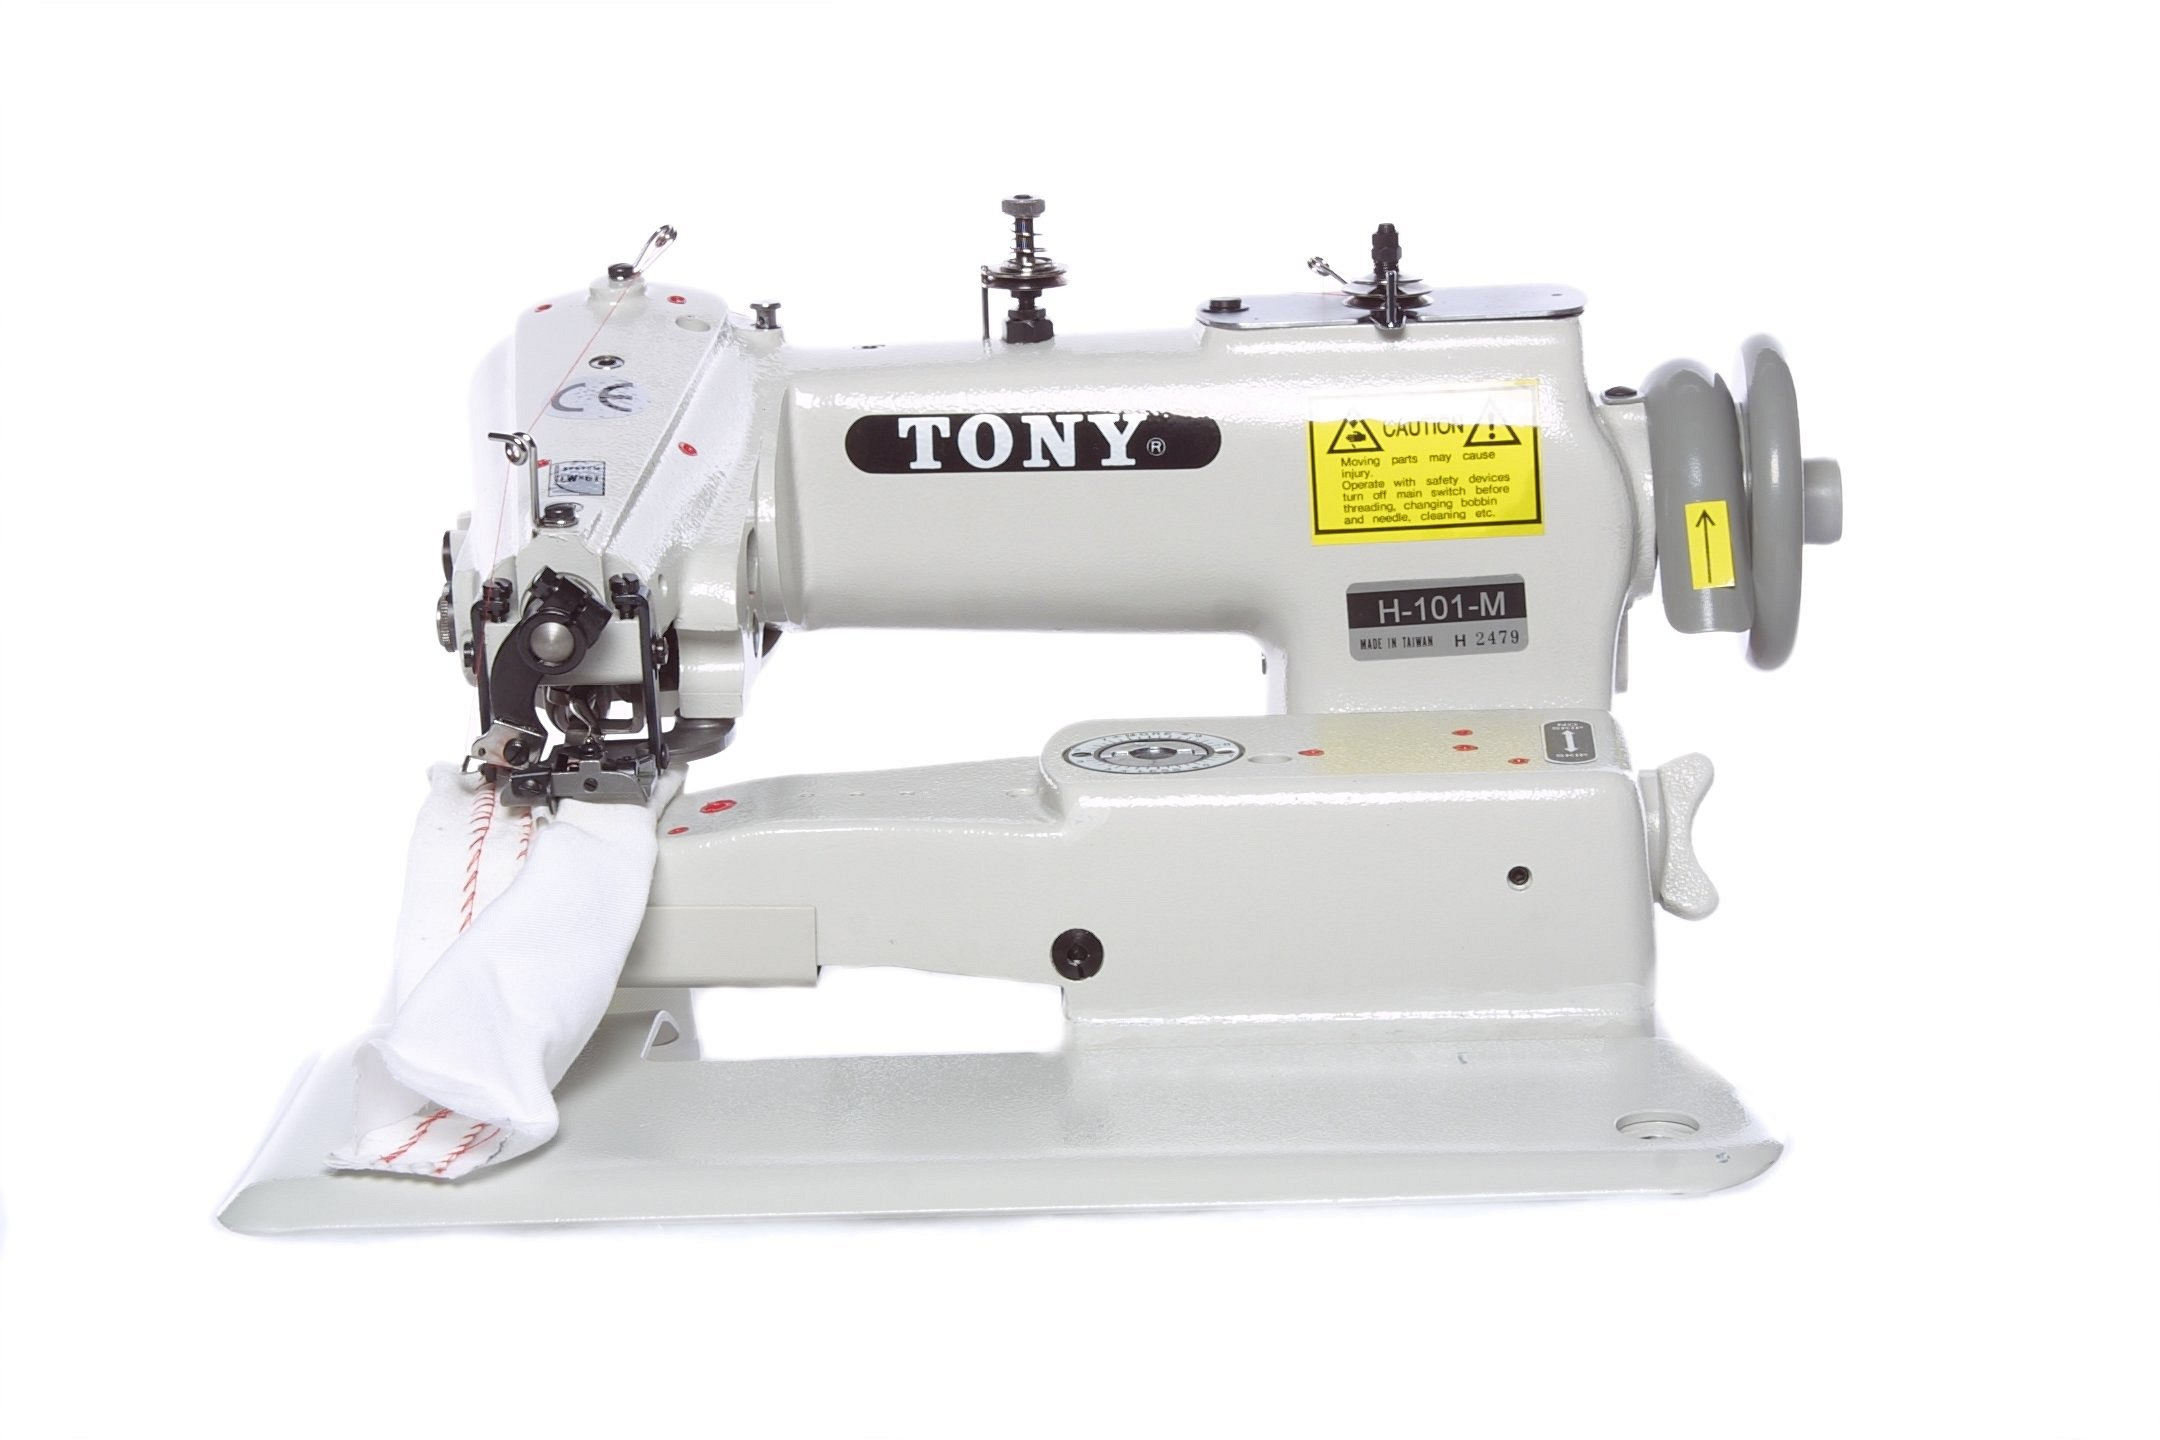 Tony H101 Indusrial Blind Hemming Blindstitch Sewing Machine